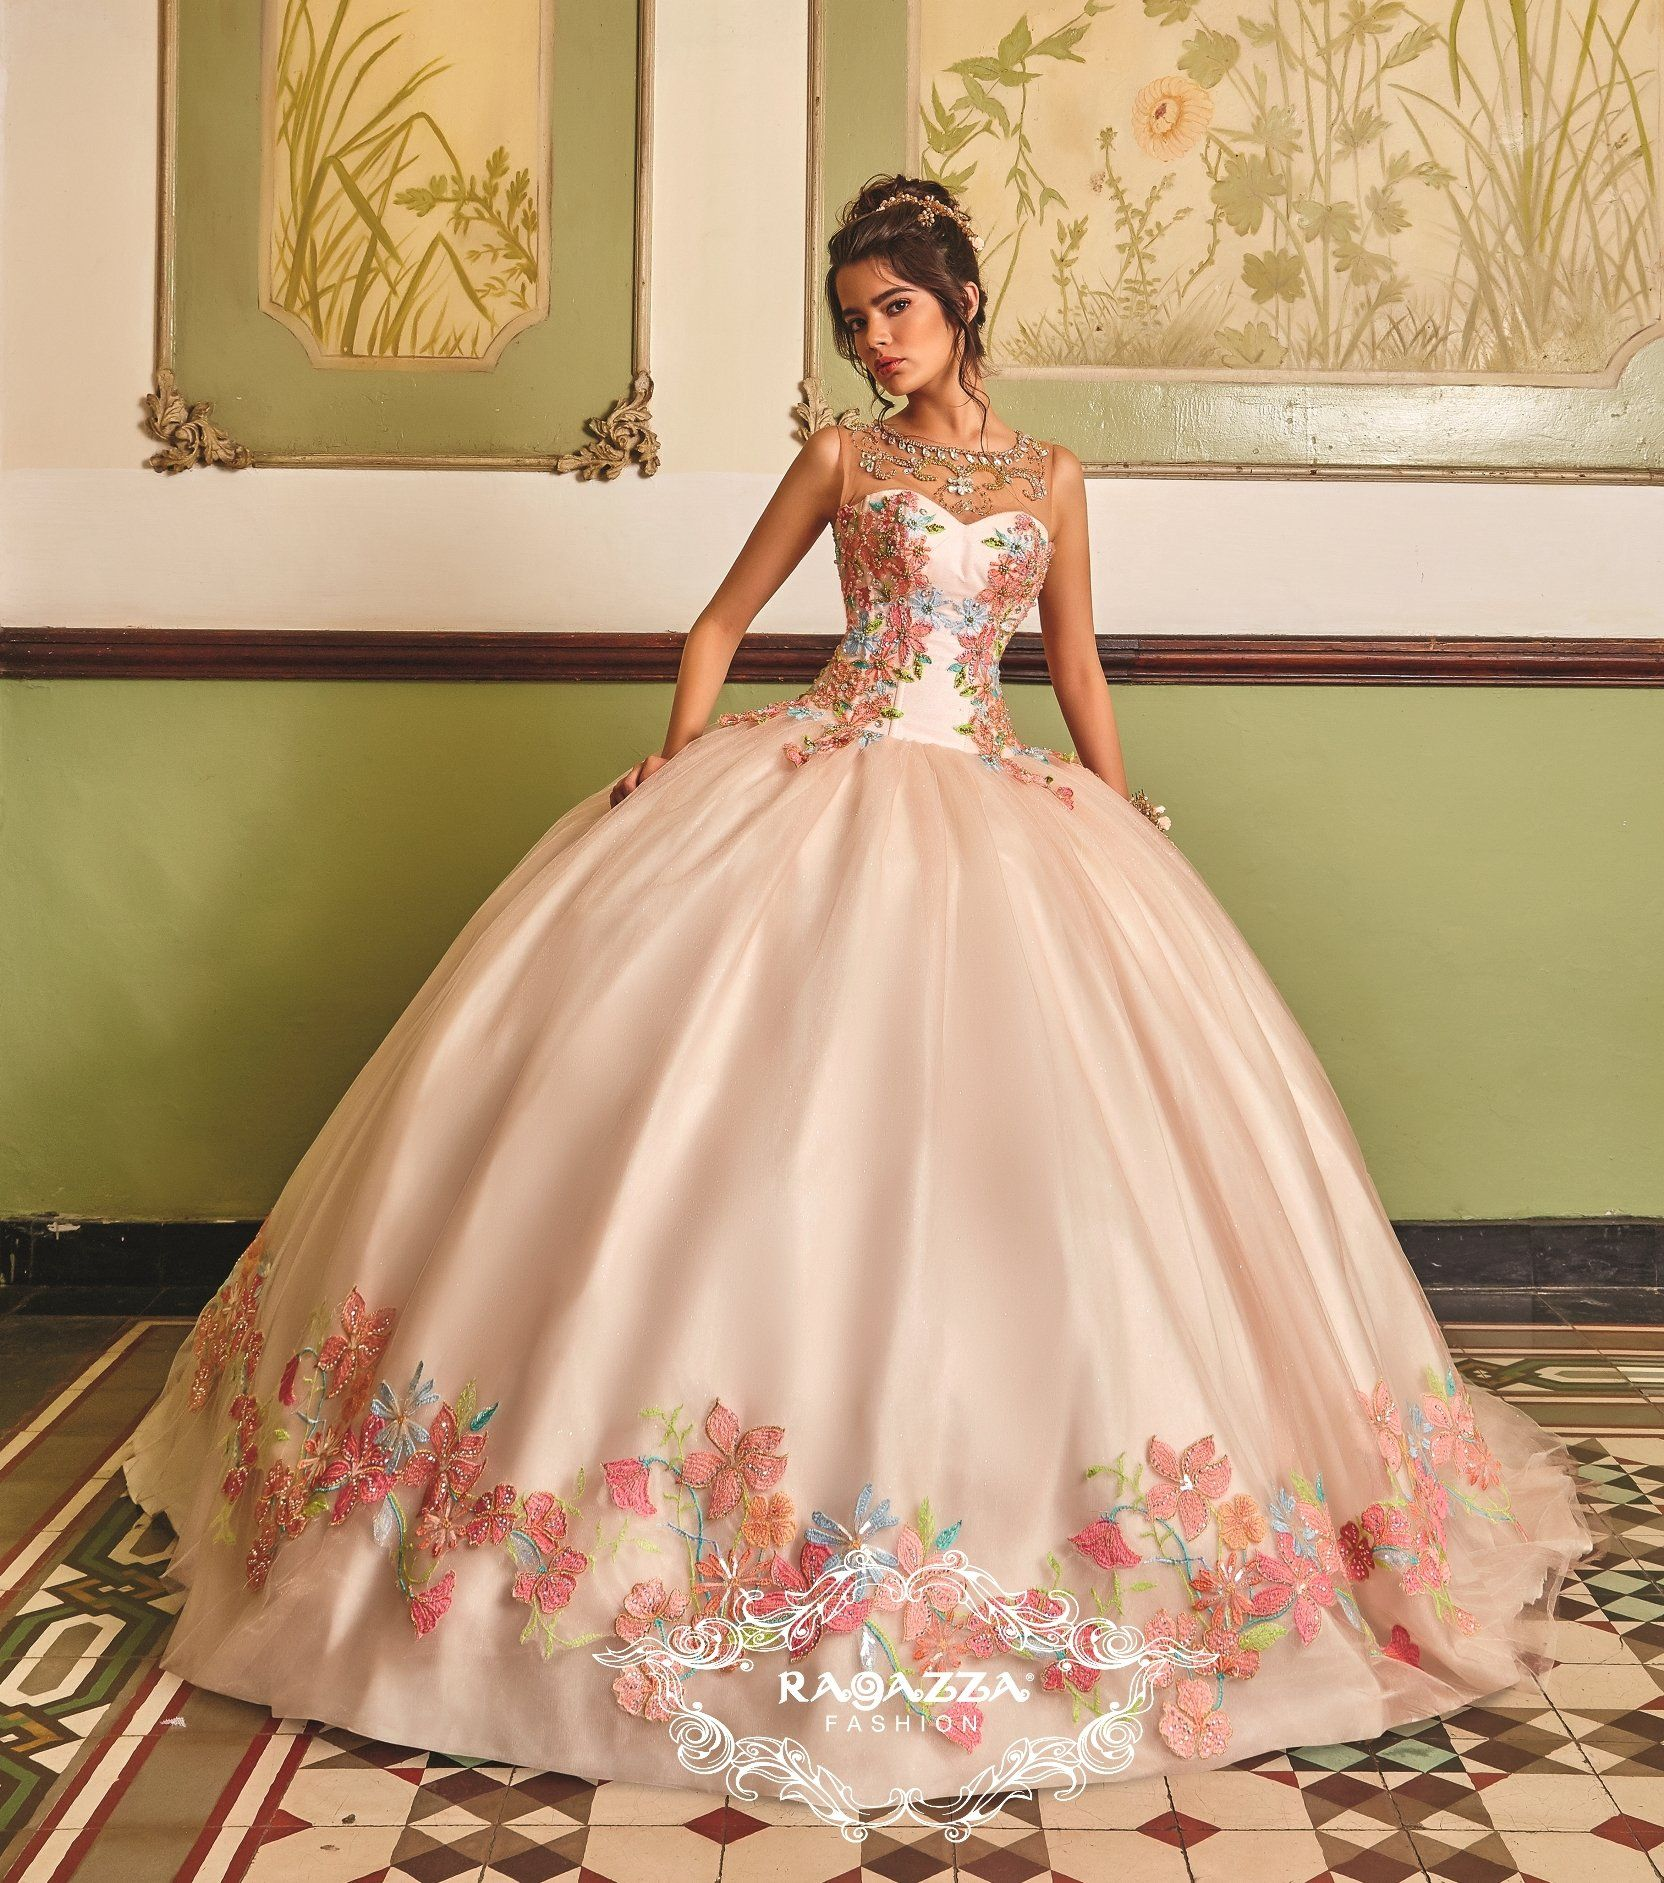 c9d9d25833 Floral Embroidered Quinceanera Dress by Ragazza Fashion V85-385